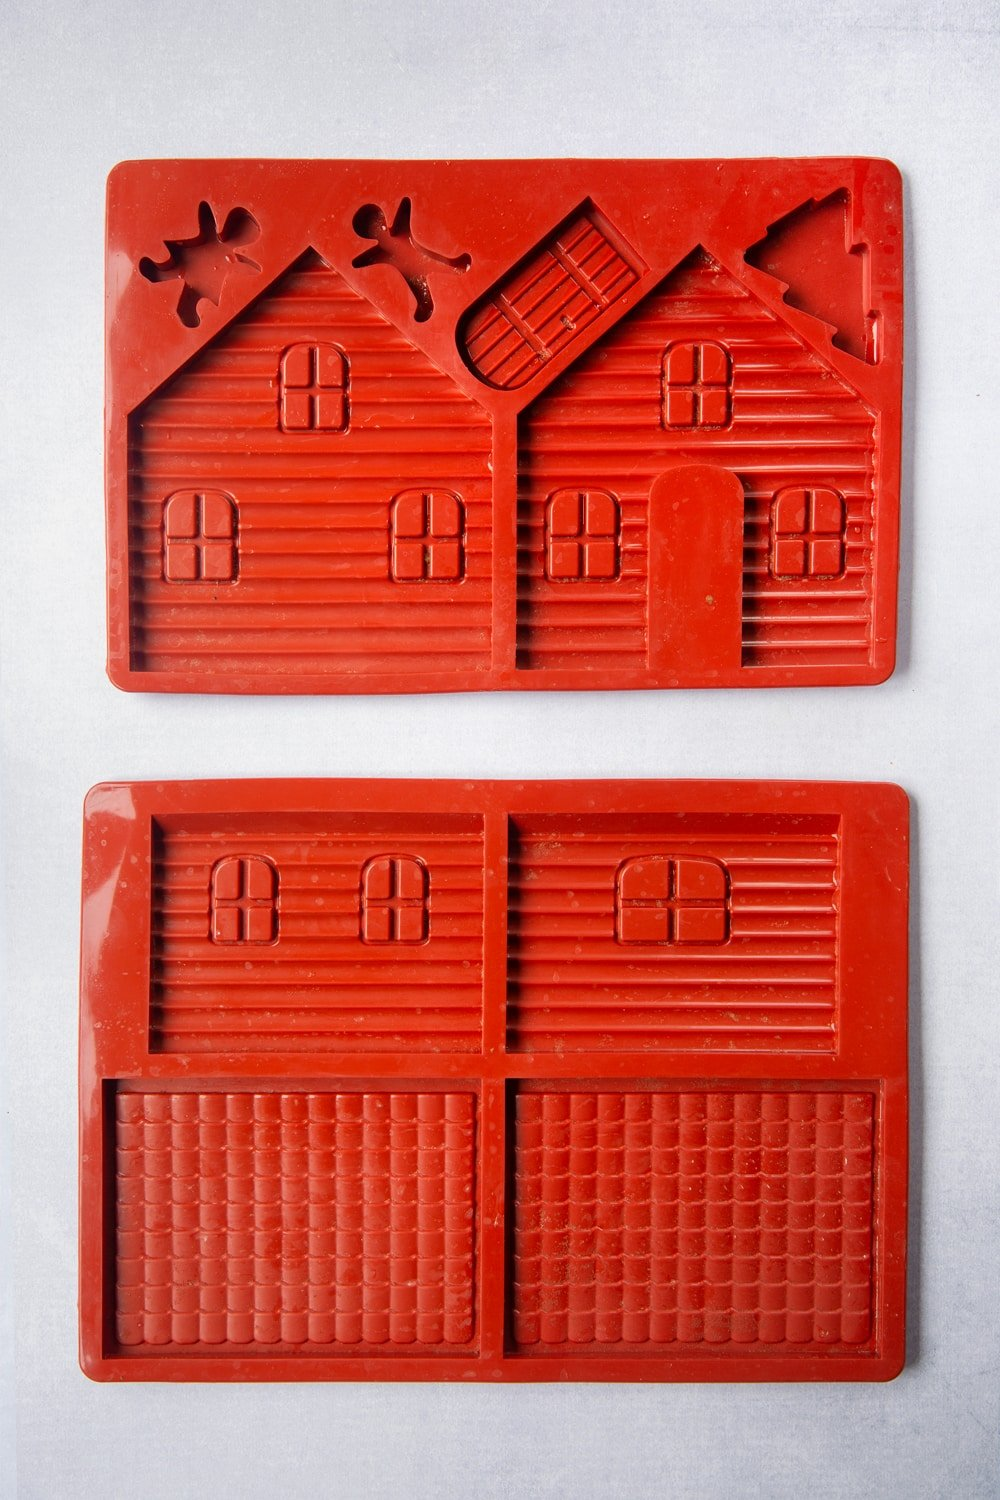 A silicone mould designed to make the pieces to construct a gingerbread house.